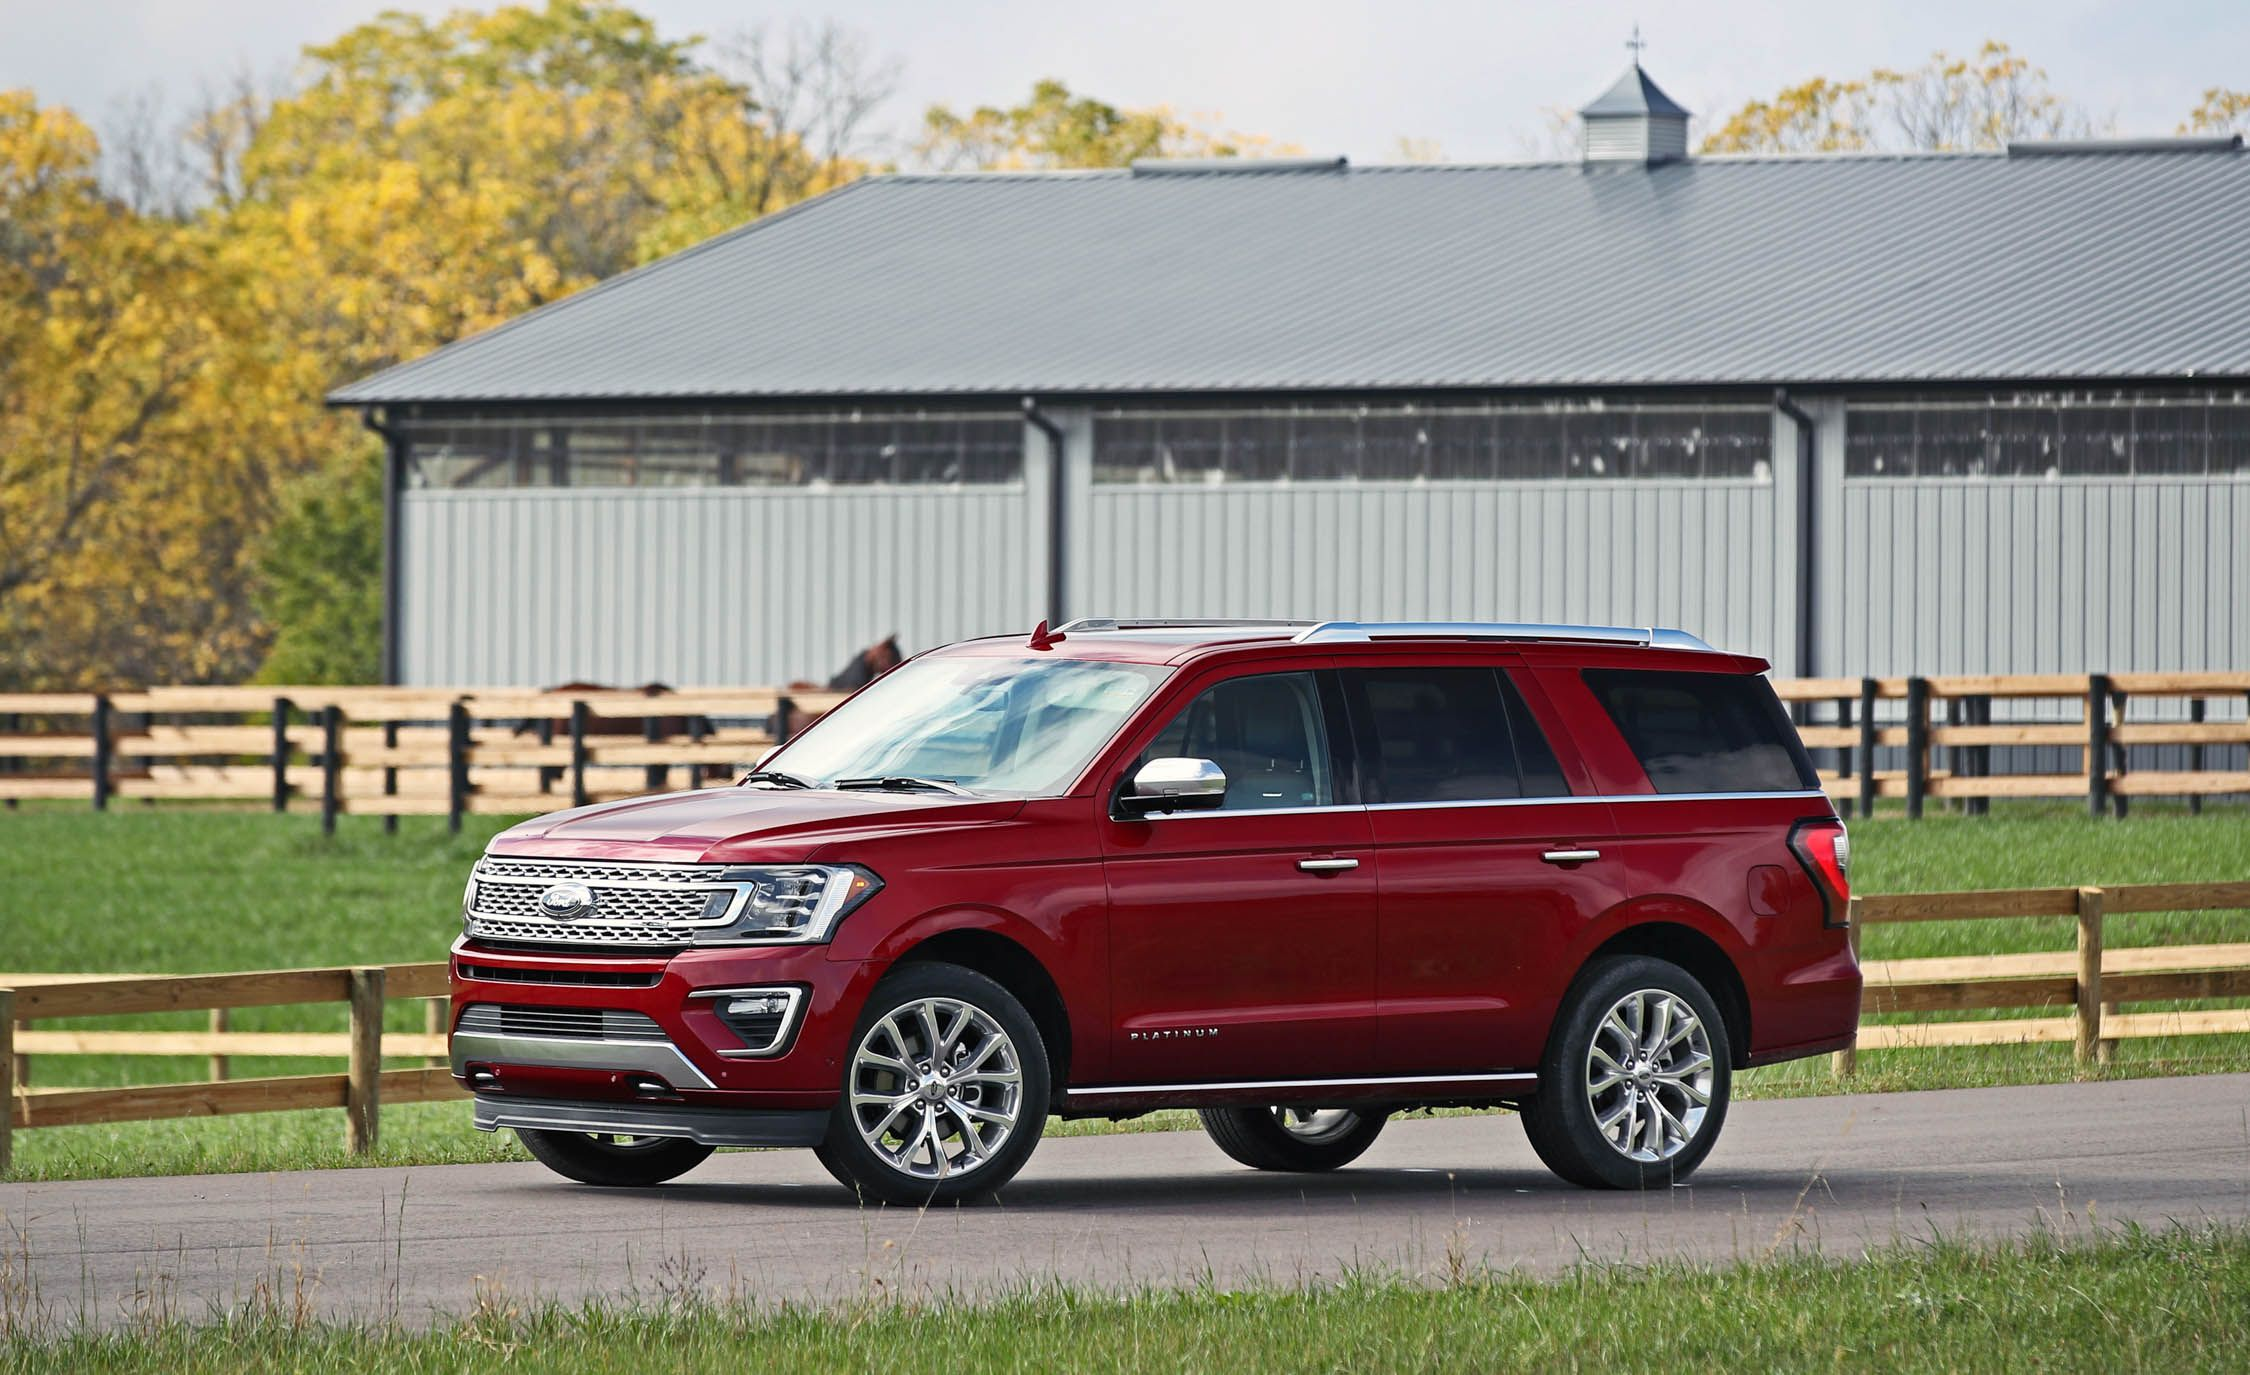 2018 Chevrolet Tahoe 4wd Review